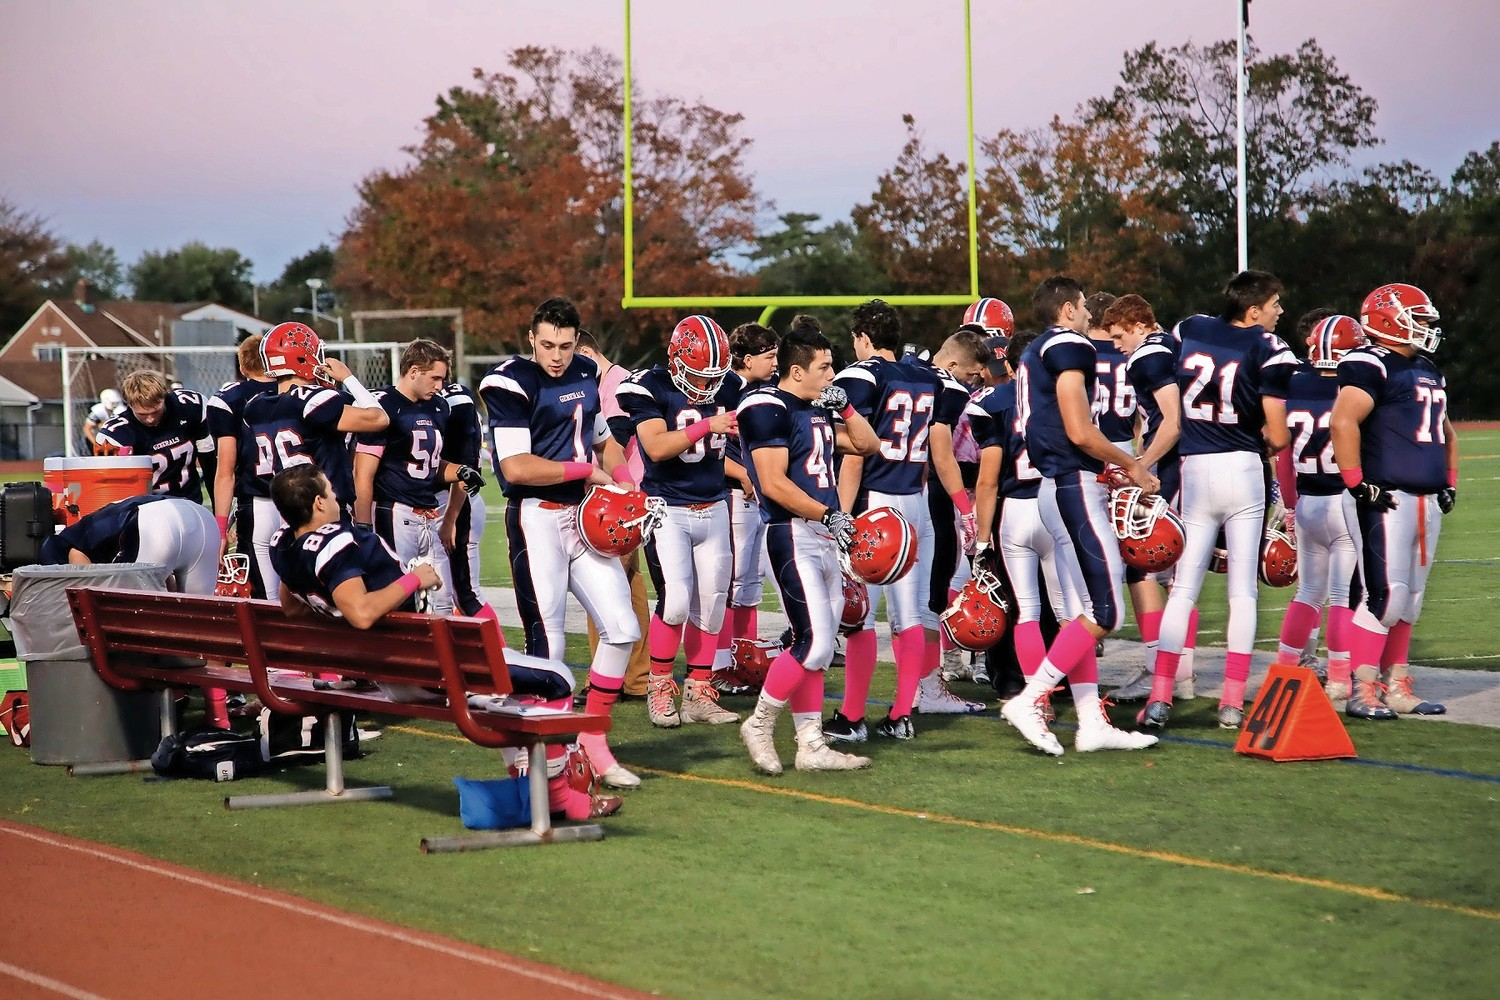 The MacArthur High School football team sported pink socks at its sixth annual Pink Out game and fair on Oct. 20.